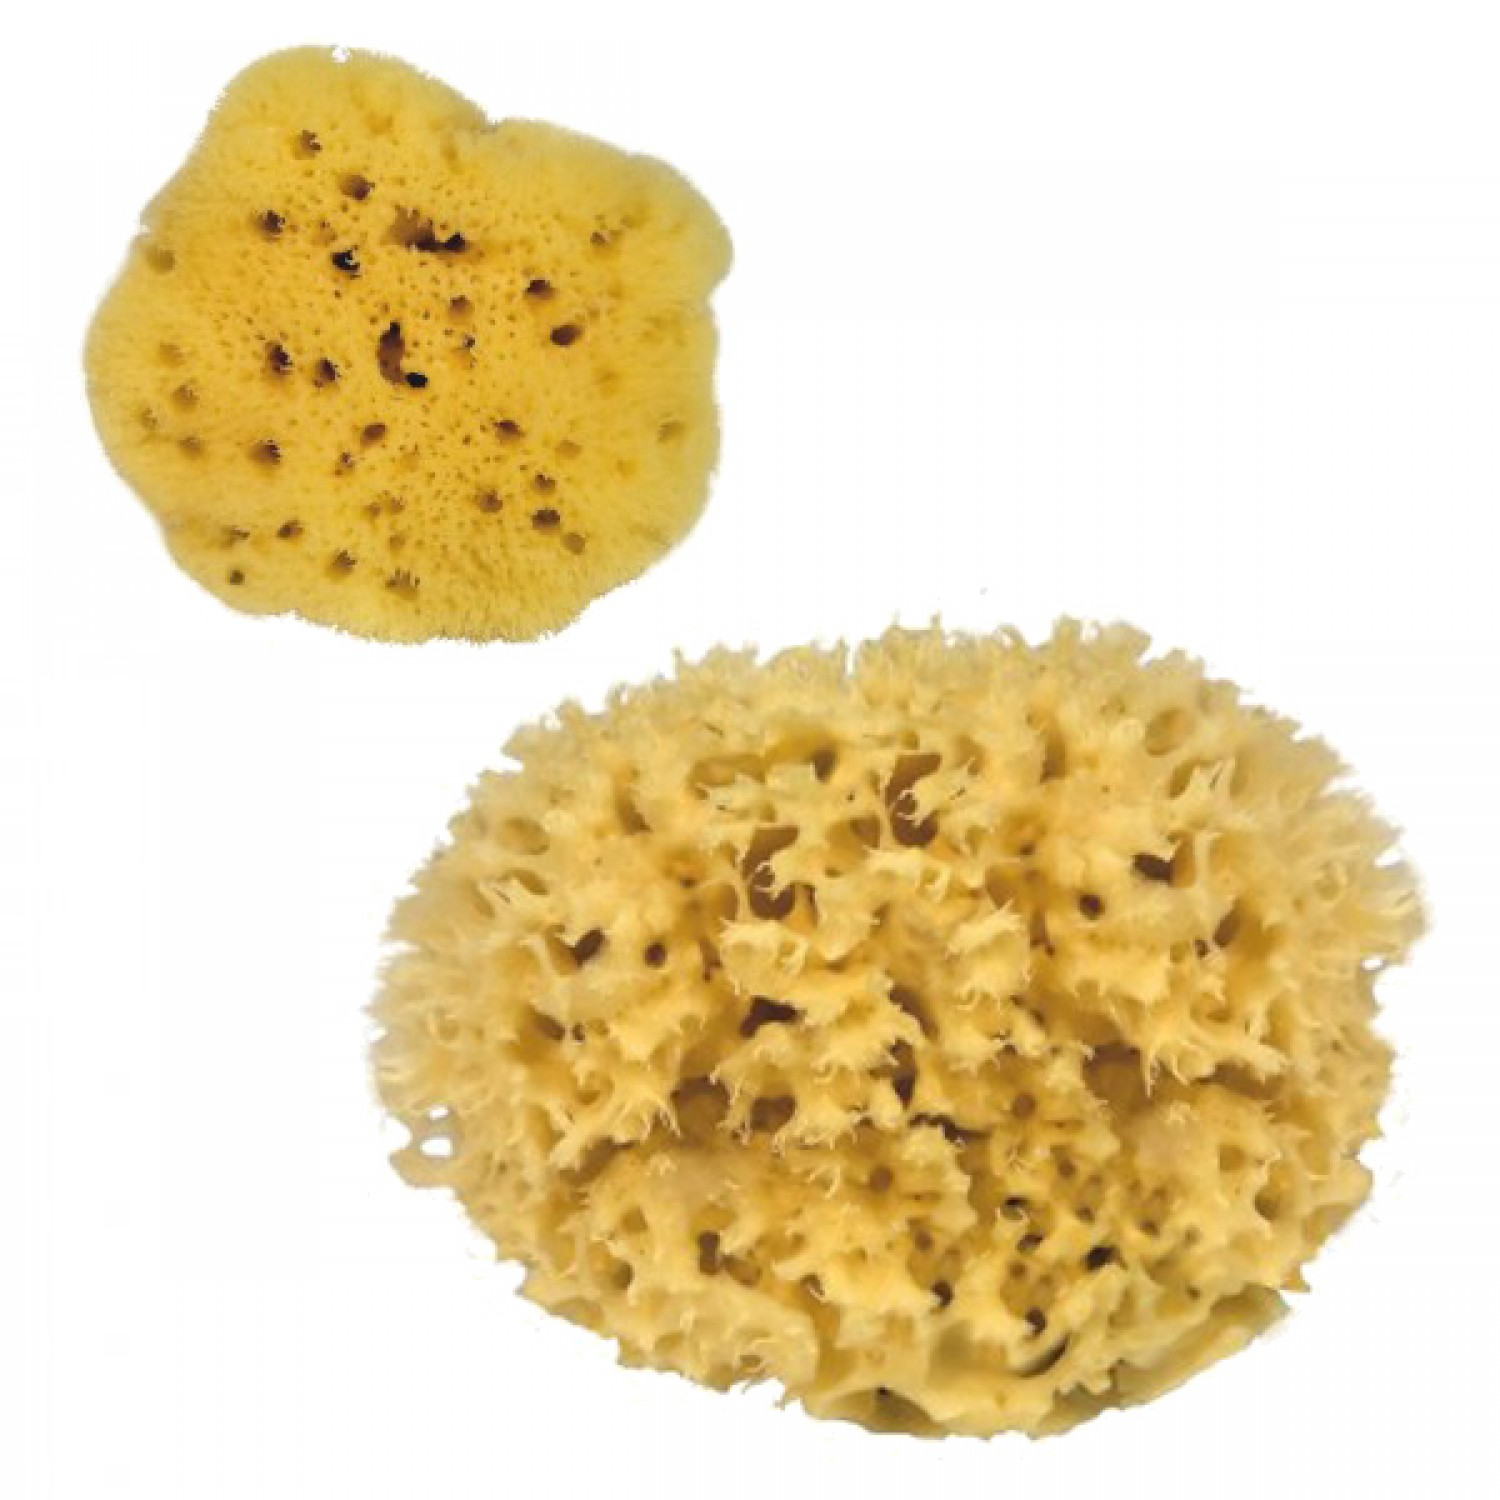 Natural Sponges - Bath Sponges for sensitive skin | Croll & Denecke